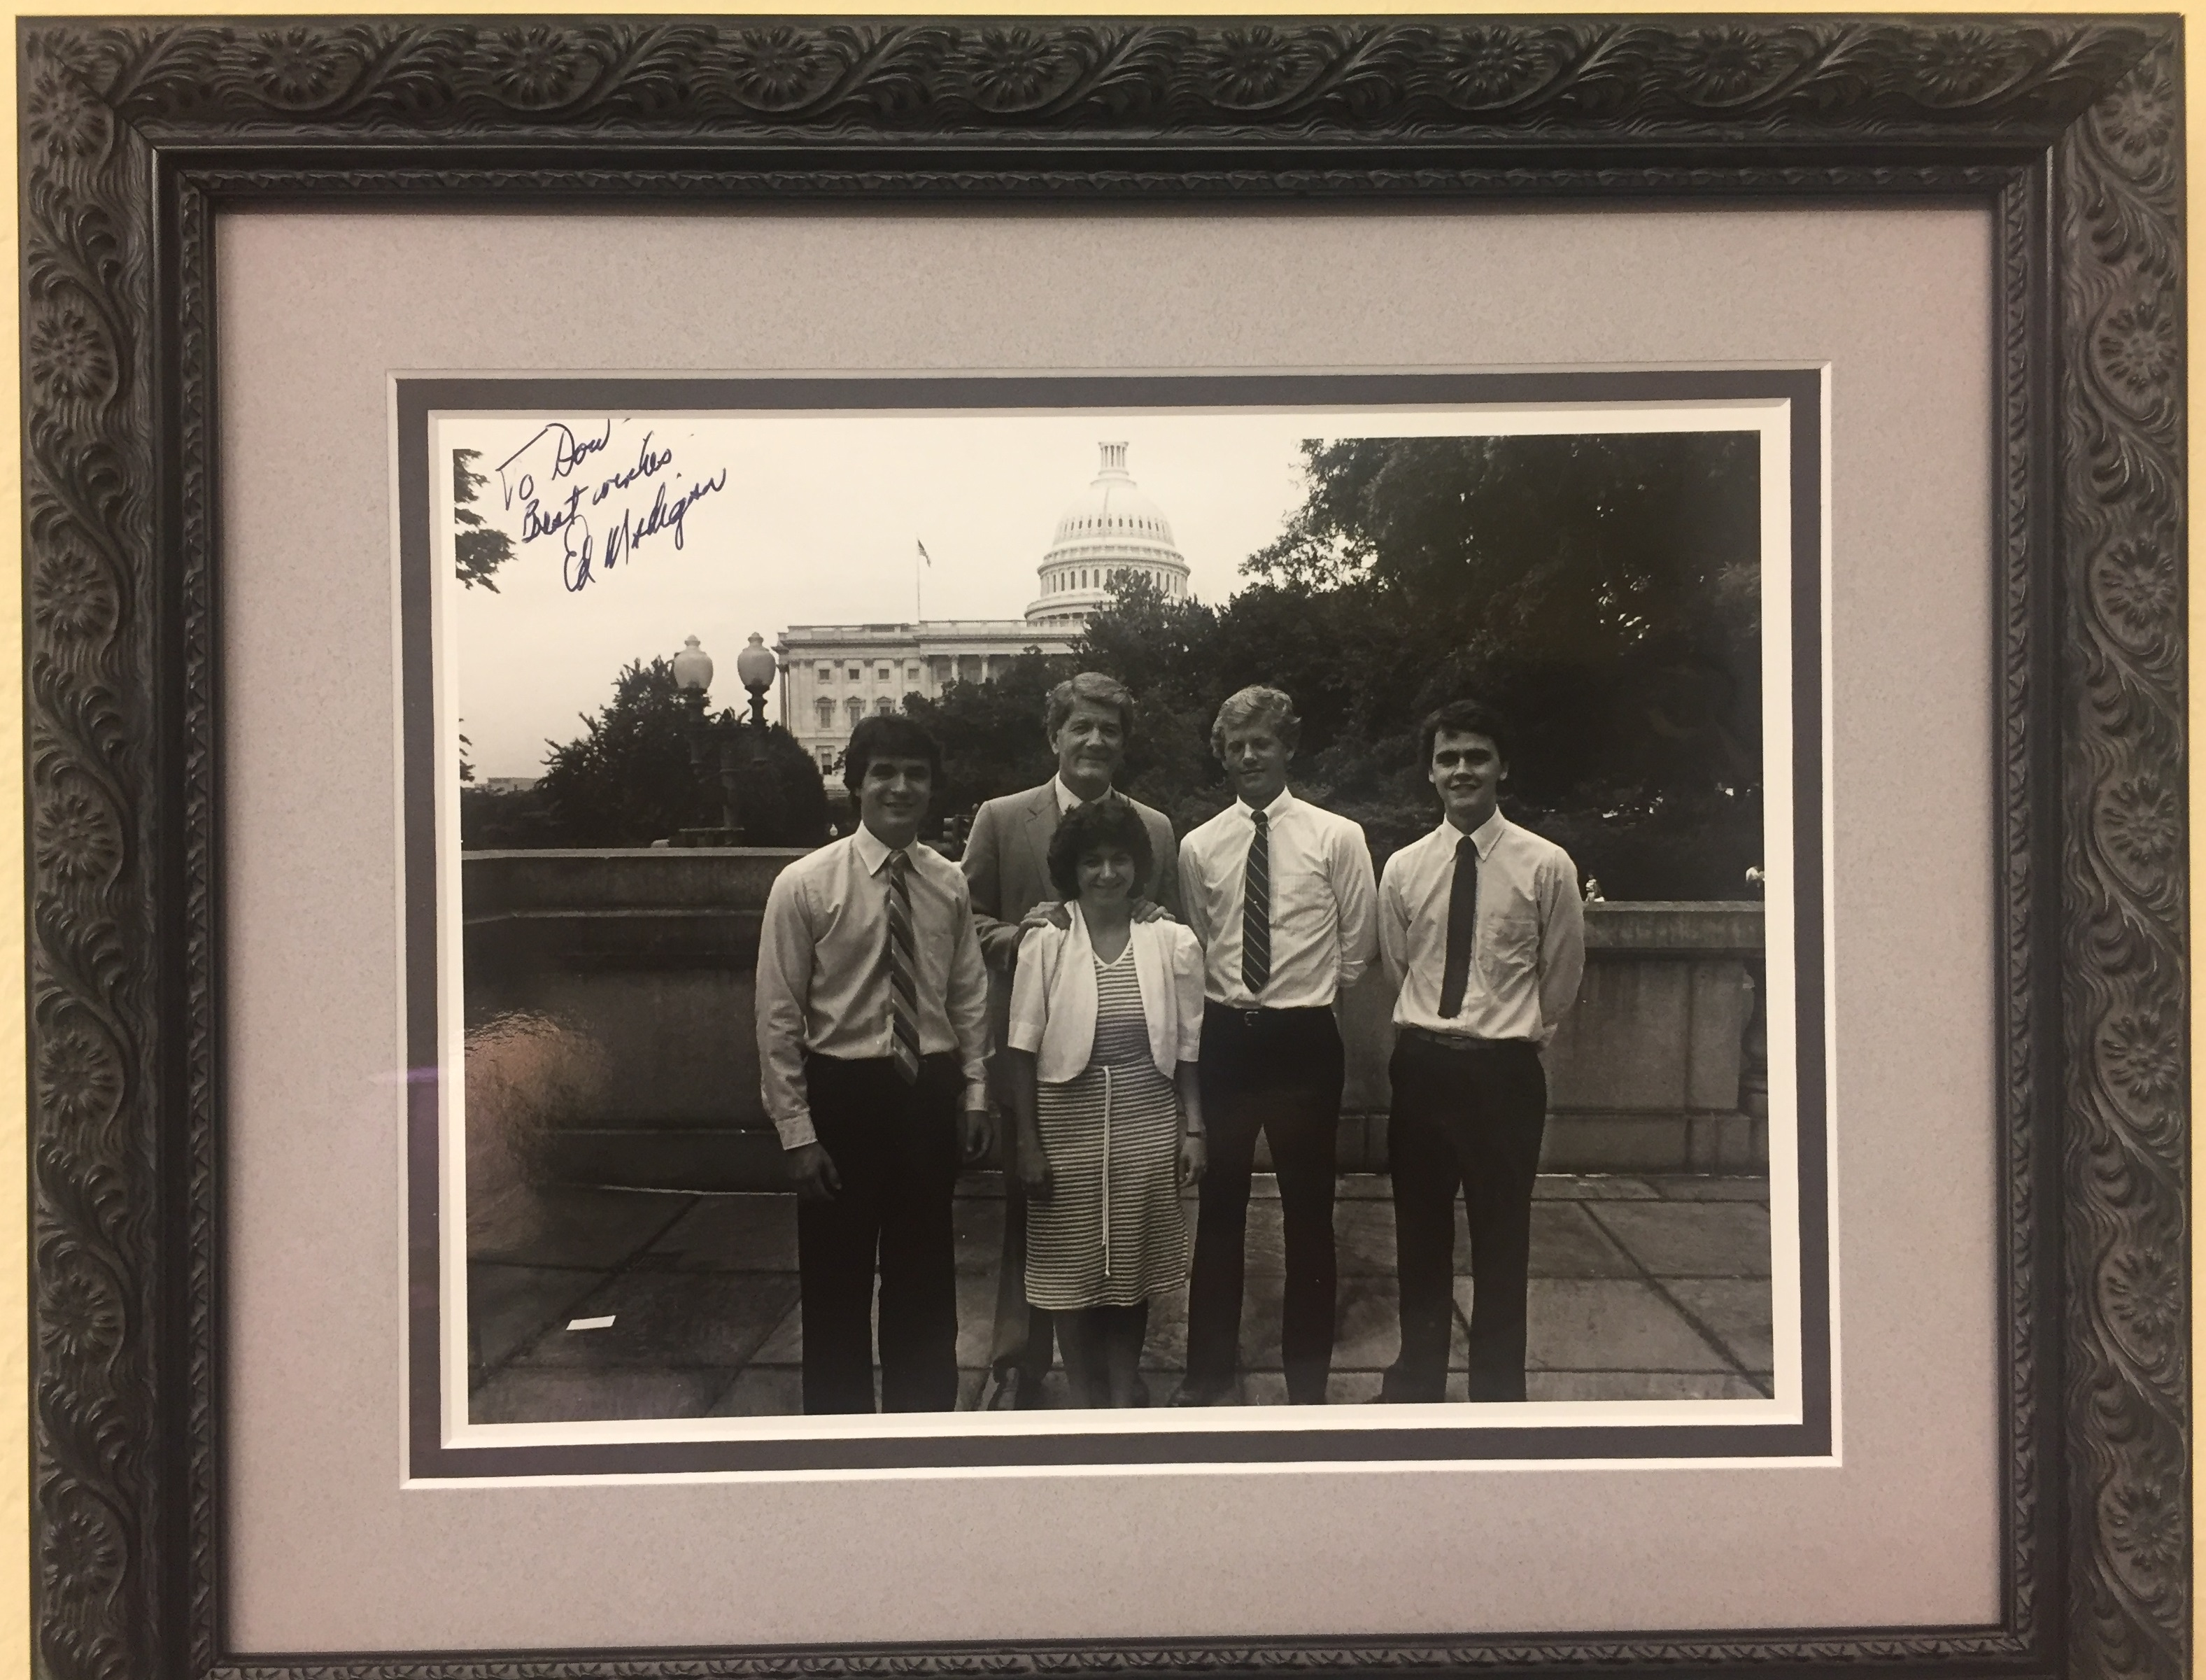 Rep. Don Bacon, R-Neb., left, Bacon worked just out of college as an intern in 1984 for Rep. Edward R. Madigan, left center. (Courtesy Bacon)